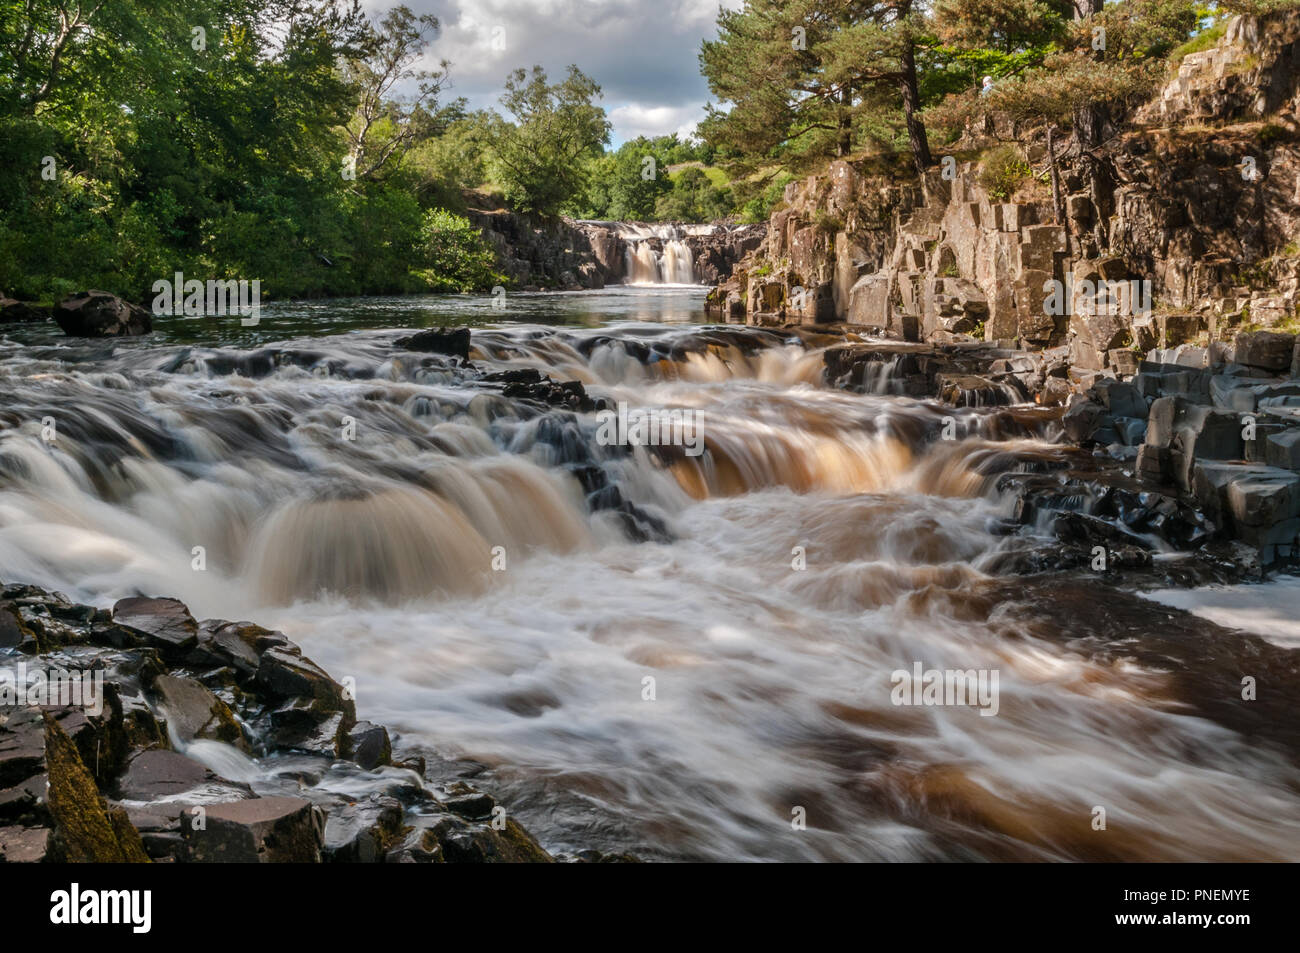 The river Tees and Low Force Waterfall in upper Teesdale on a lovely day during summer. - Stock Image